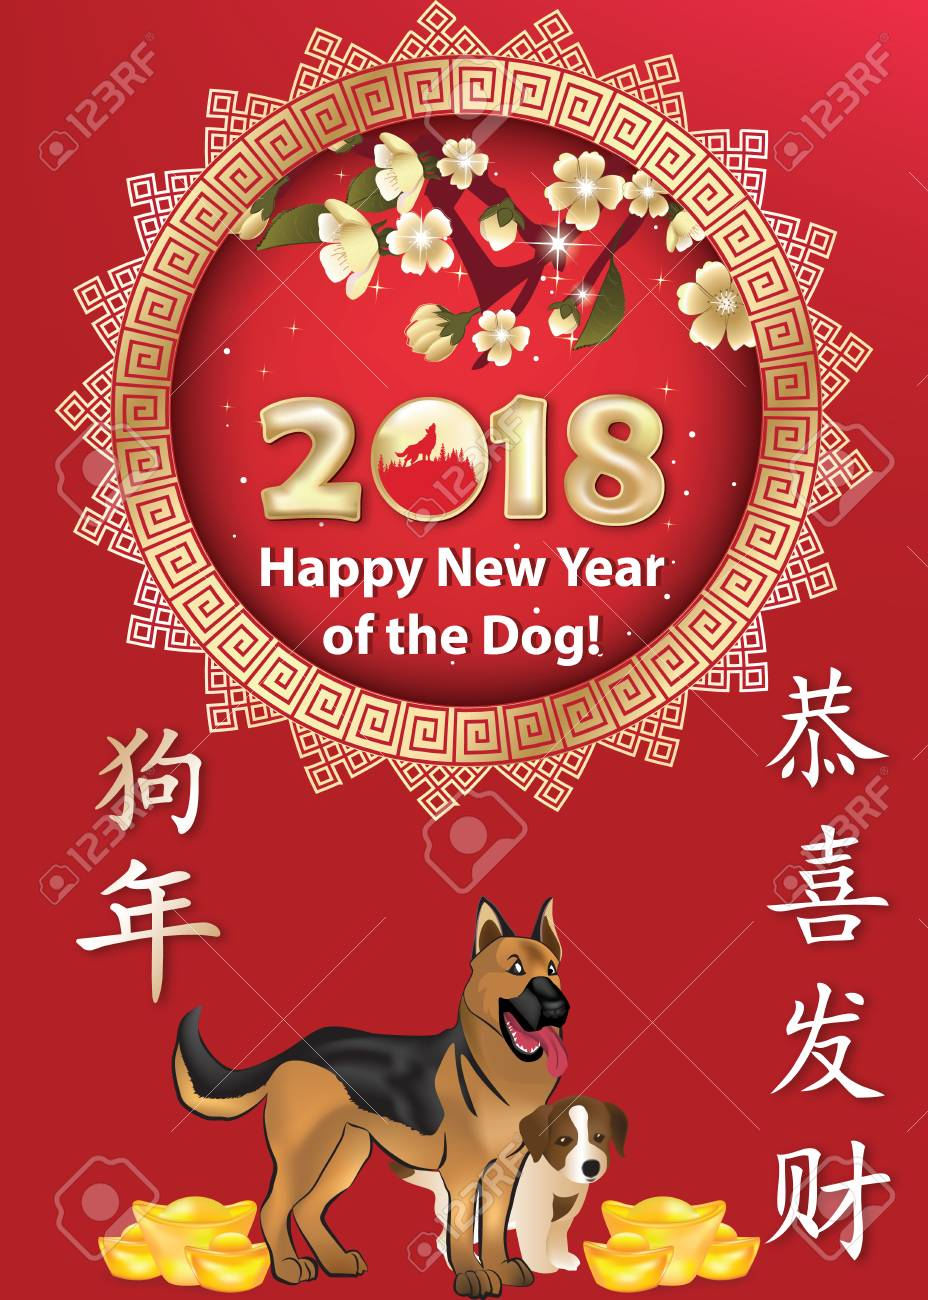 Happy Chinese New Year 2018 Greeting Card With Text In Chinese